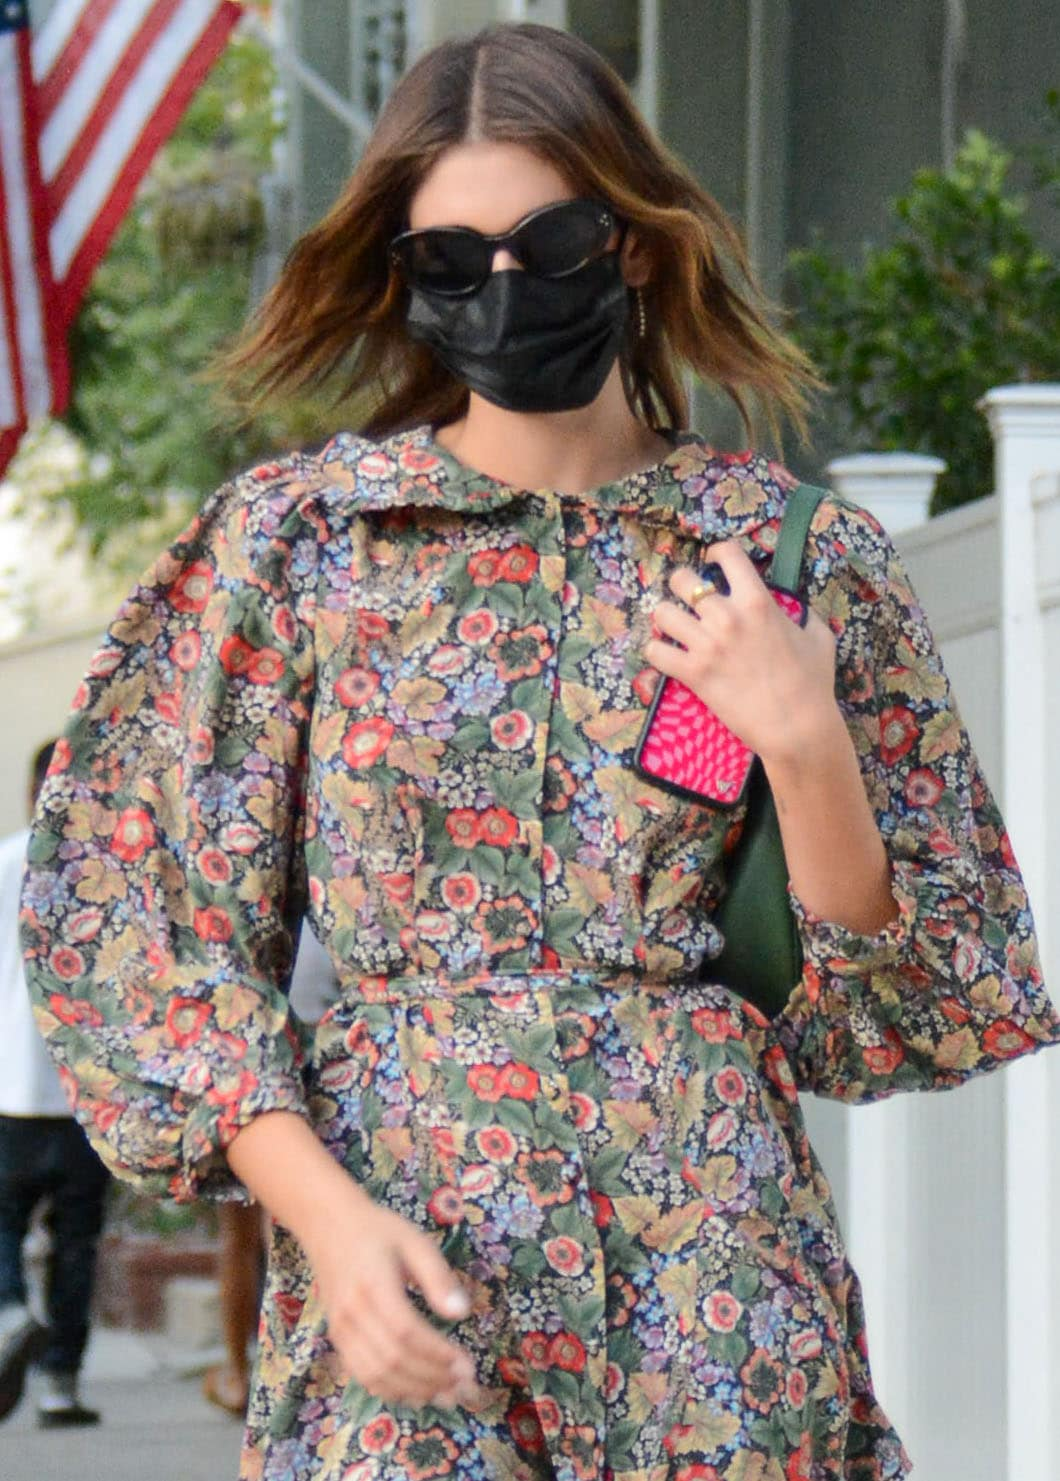 Kaia Gerber wears her short hair loose and keeps a low profile with Celine sunglasses and a black face mask